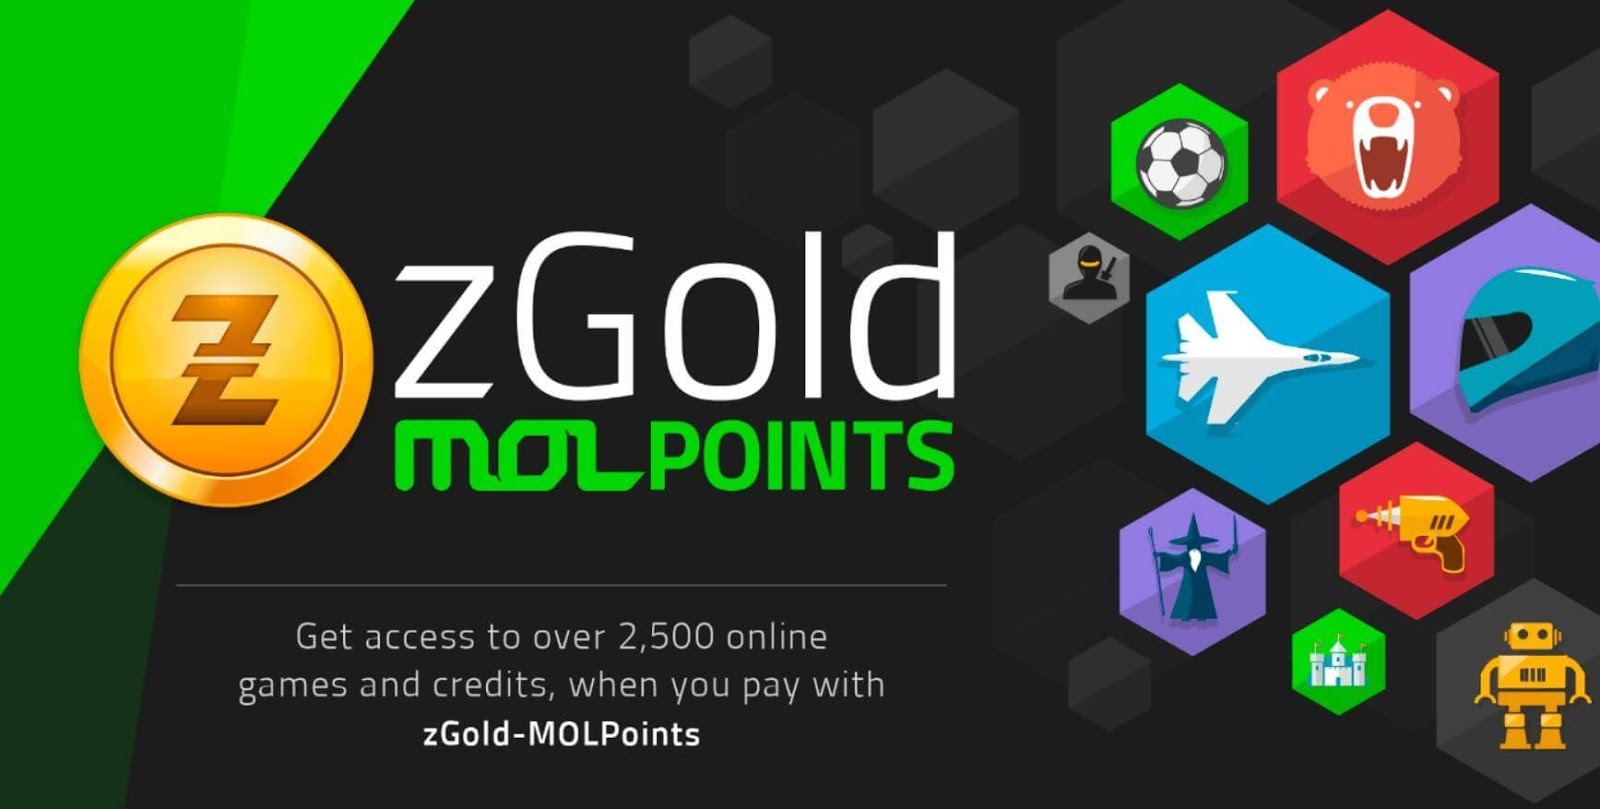 Razer Teams Up with MOL; Now Offers zGold-MOLPoints For An Easy Virtual Currency